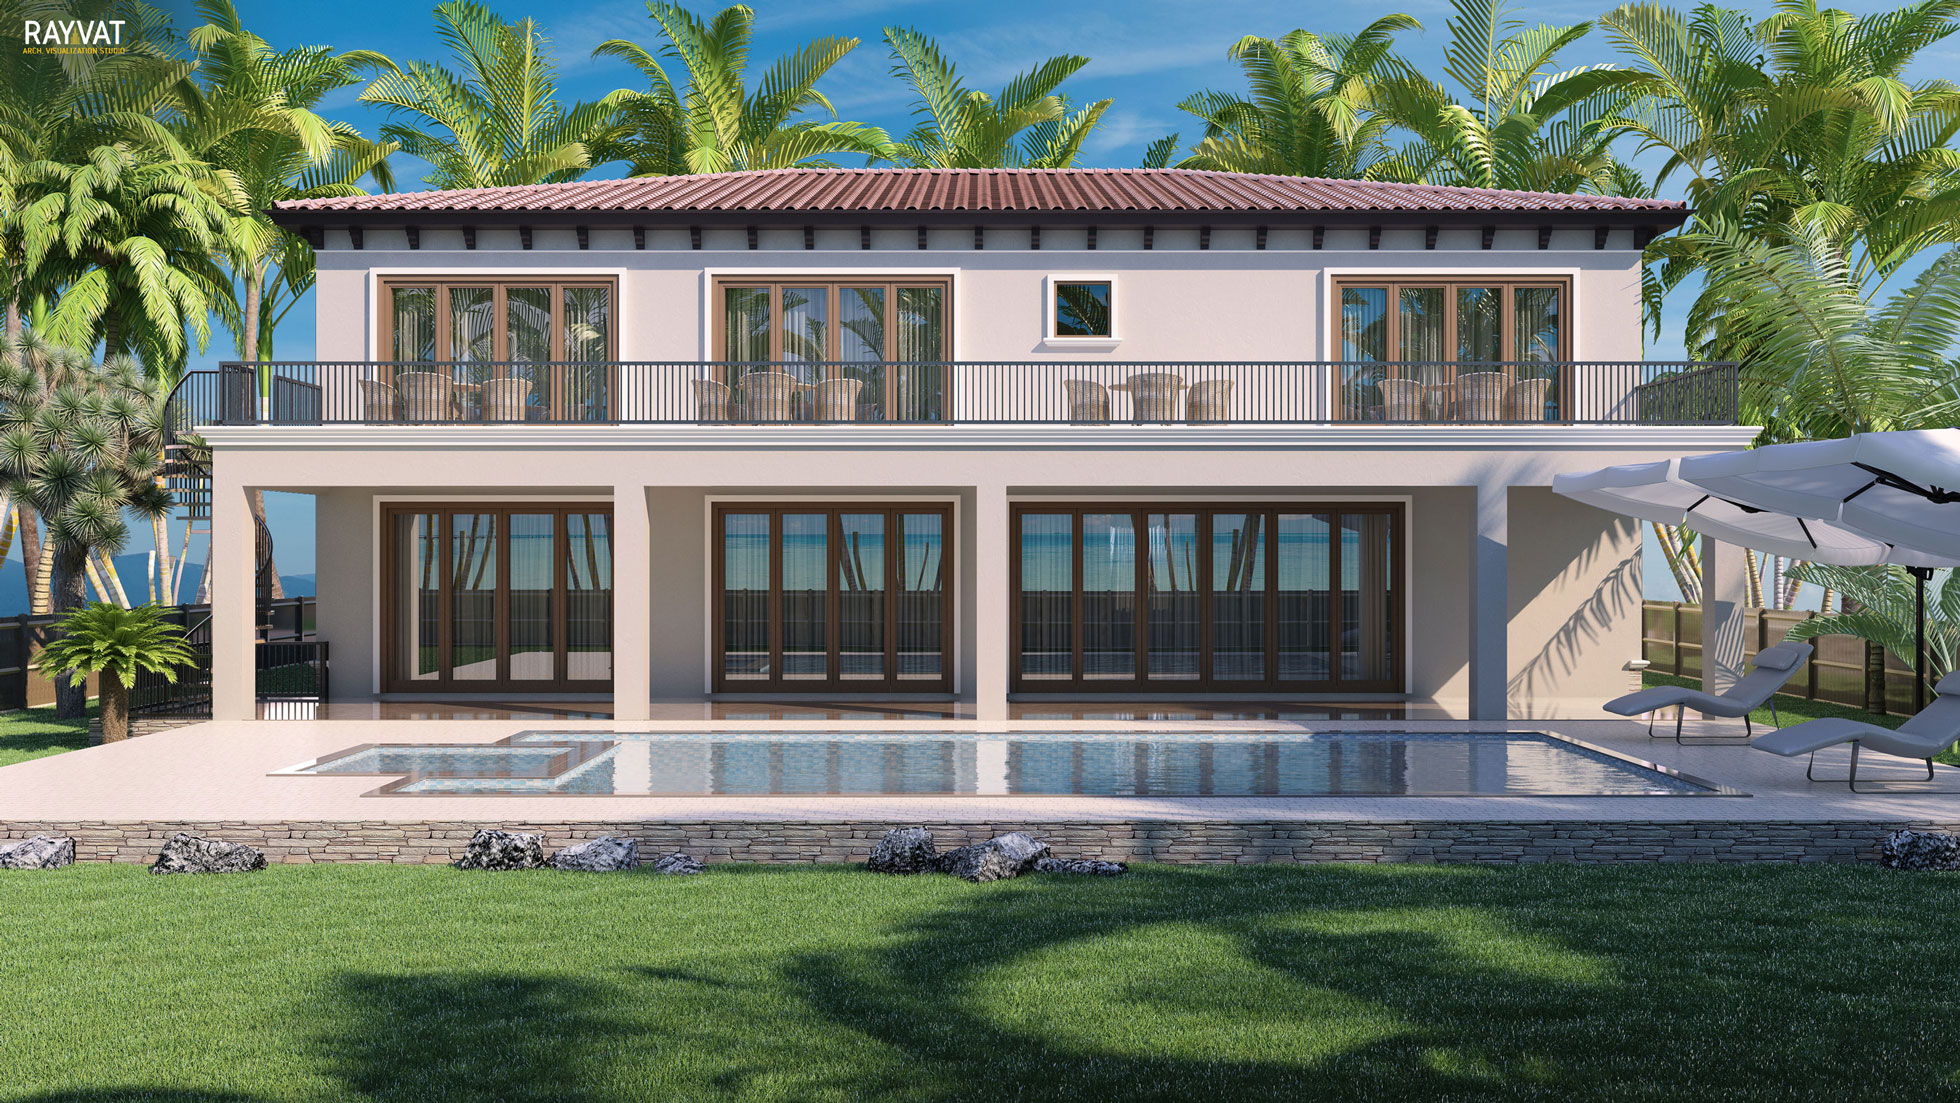 3D Rendering Services West Palm Beach, Florida